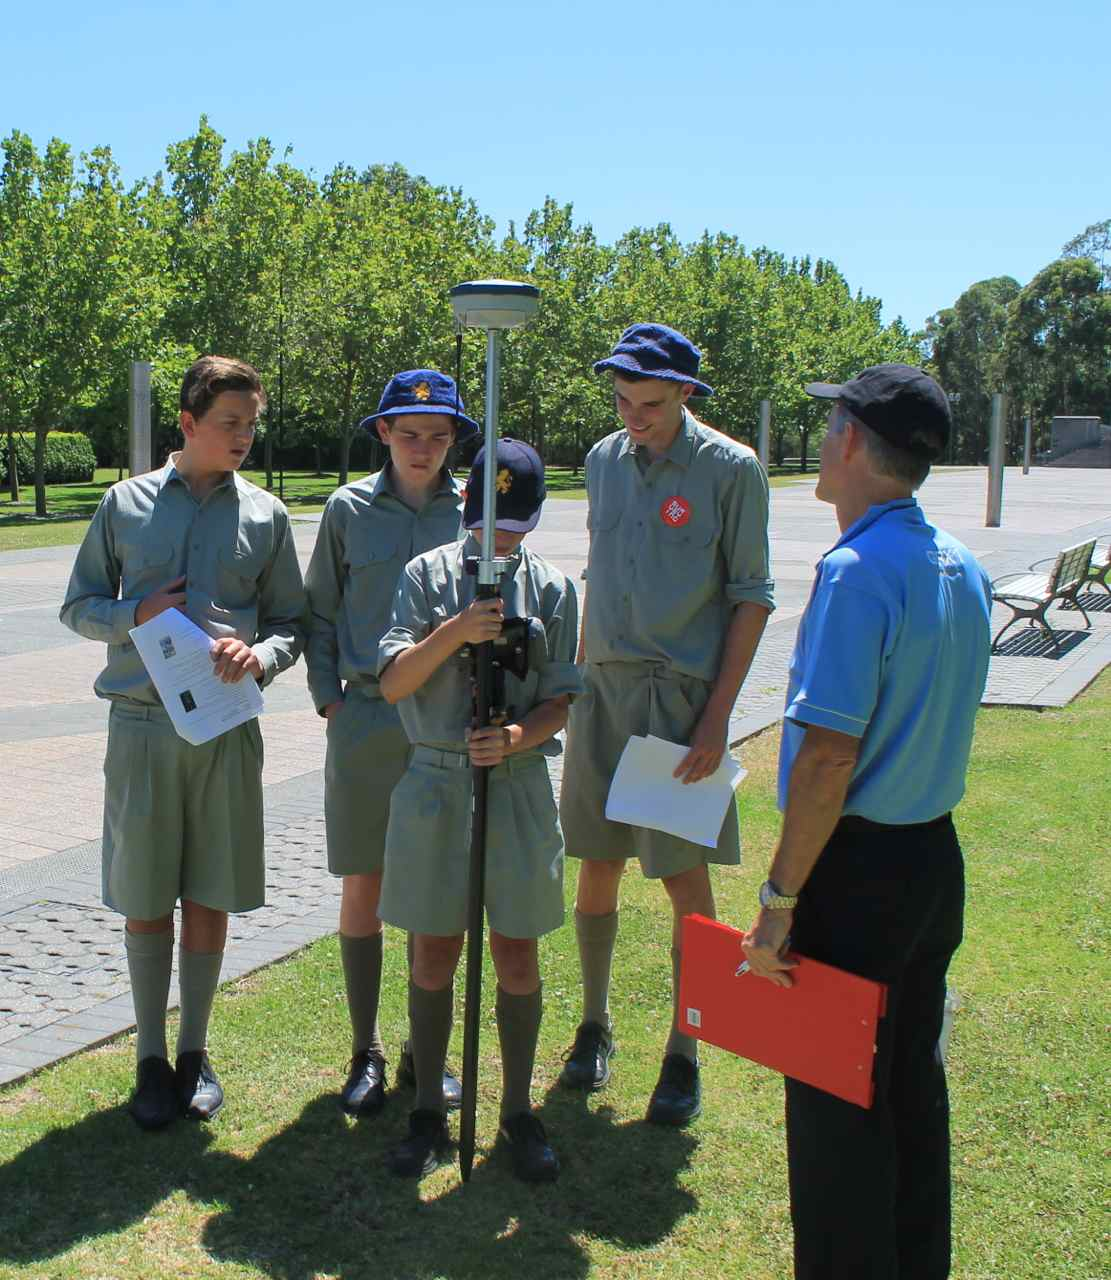 students get hands on technology at the maths in surveying we hope this event will help students see how exciting careers in surveying can be and encourage them to keep going maths through hsc to meet uni